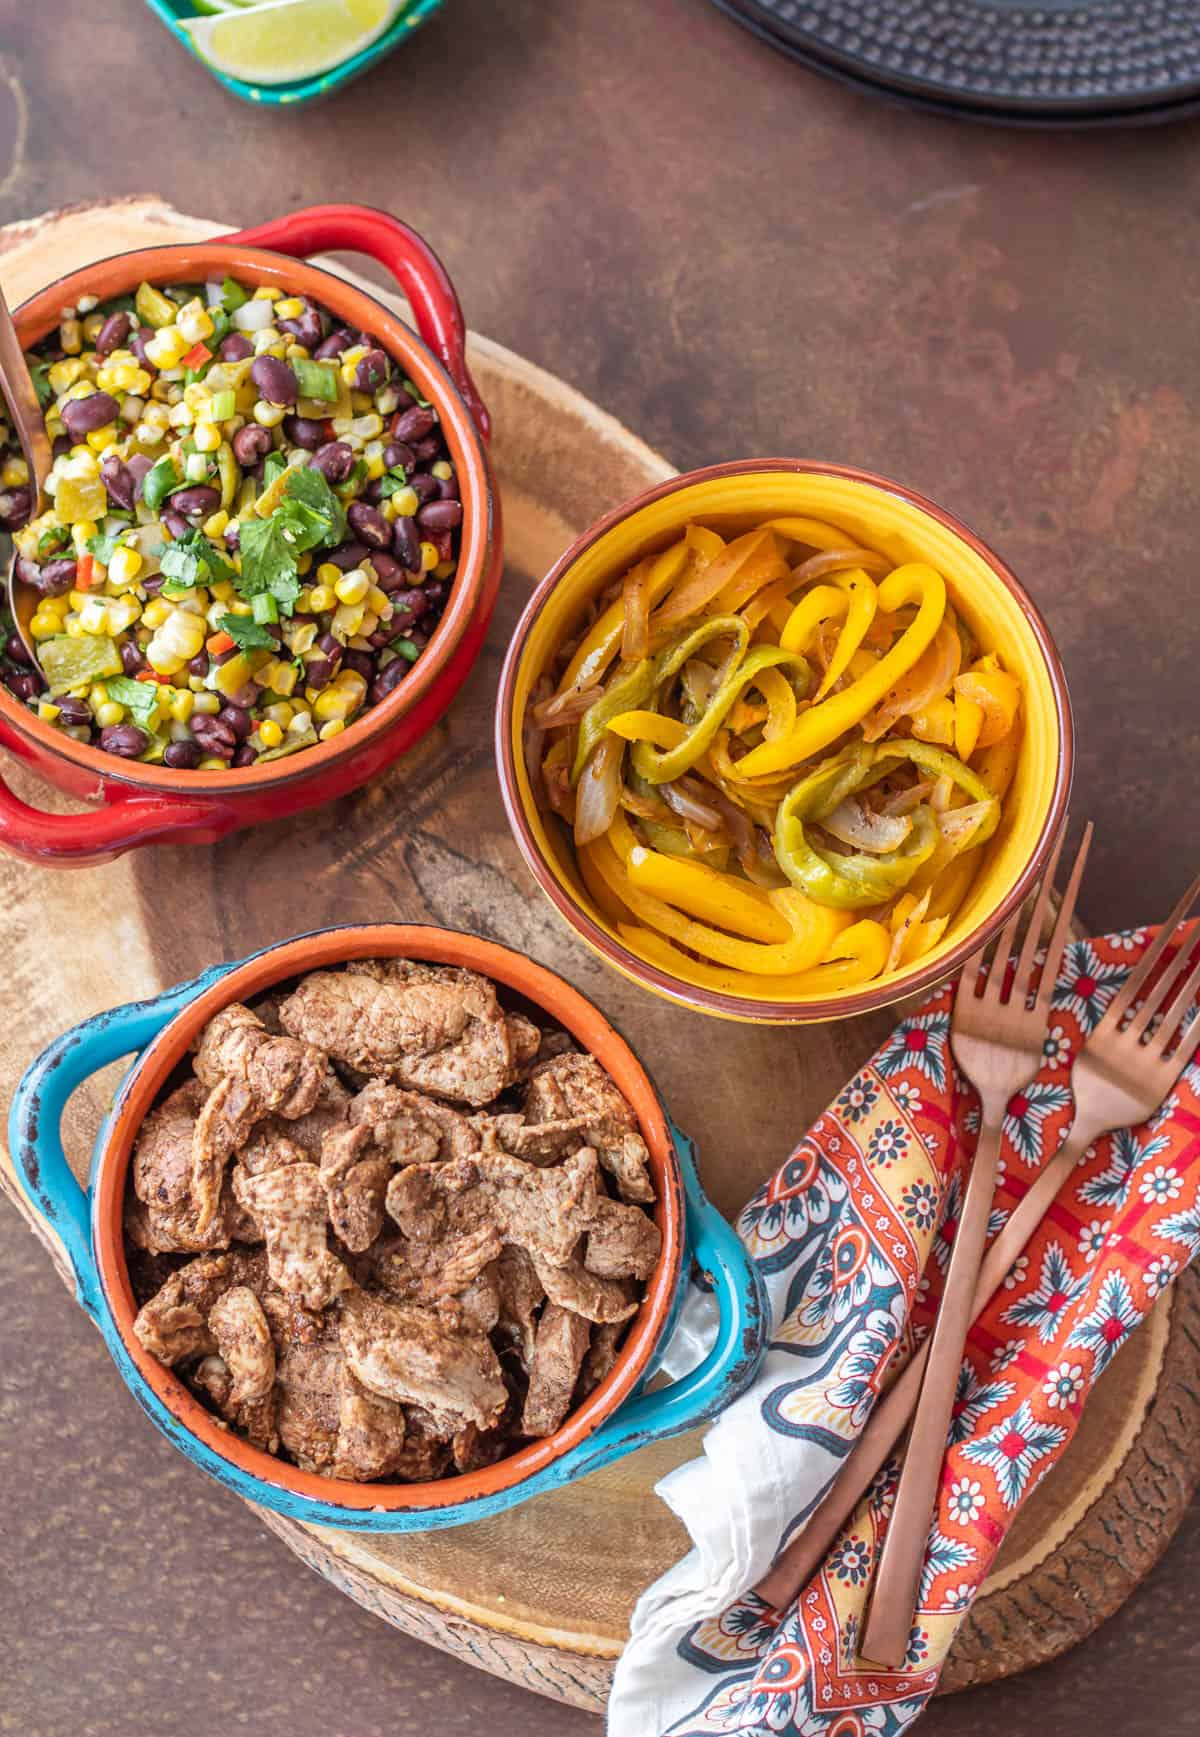 3 stoneware bowls with pork fajita taco ingredients - cooked pork tenderloin, green chile and pepper strips, and grilled corn and black bean salsa.